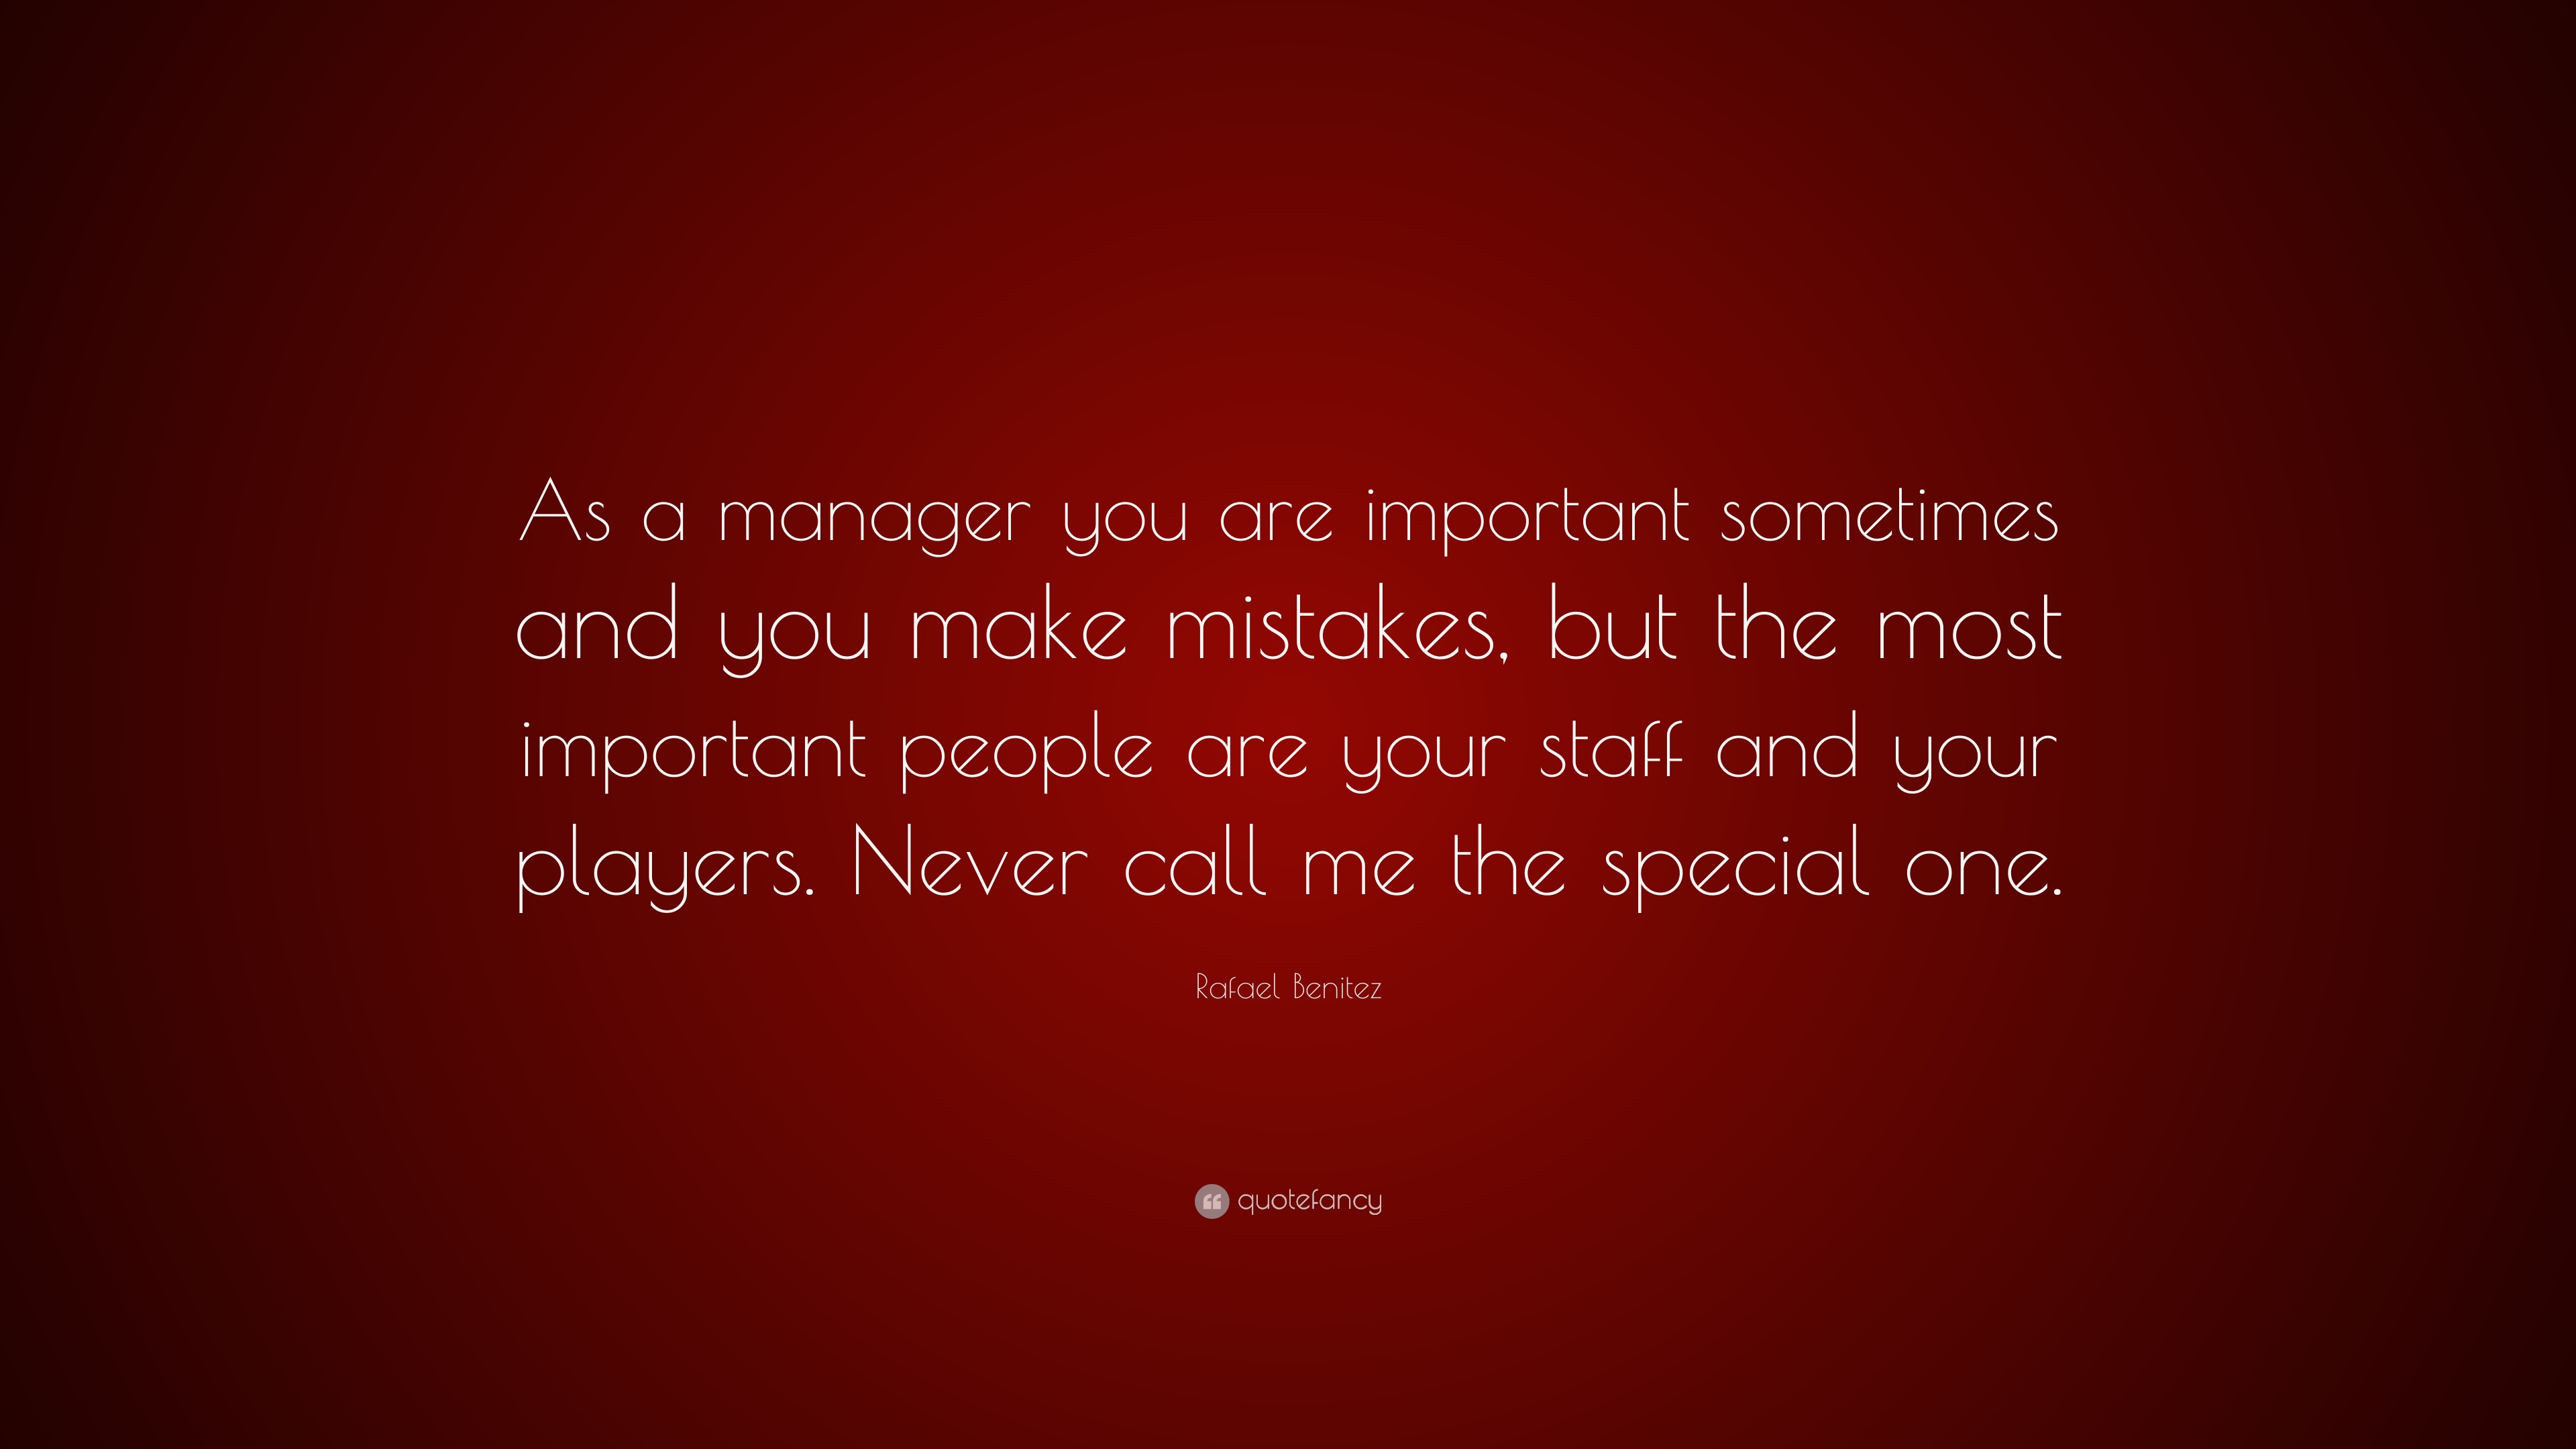 Rafael Benitez Quote As A Manager You Are Important Sometimes And